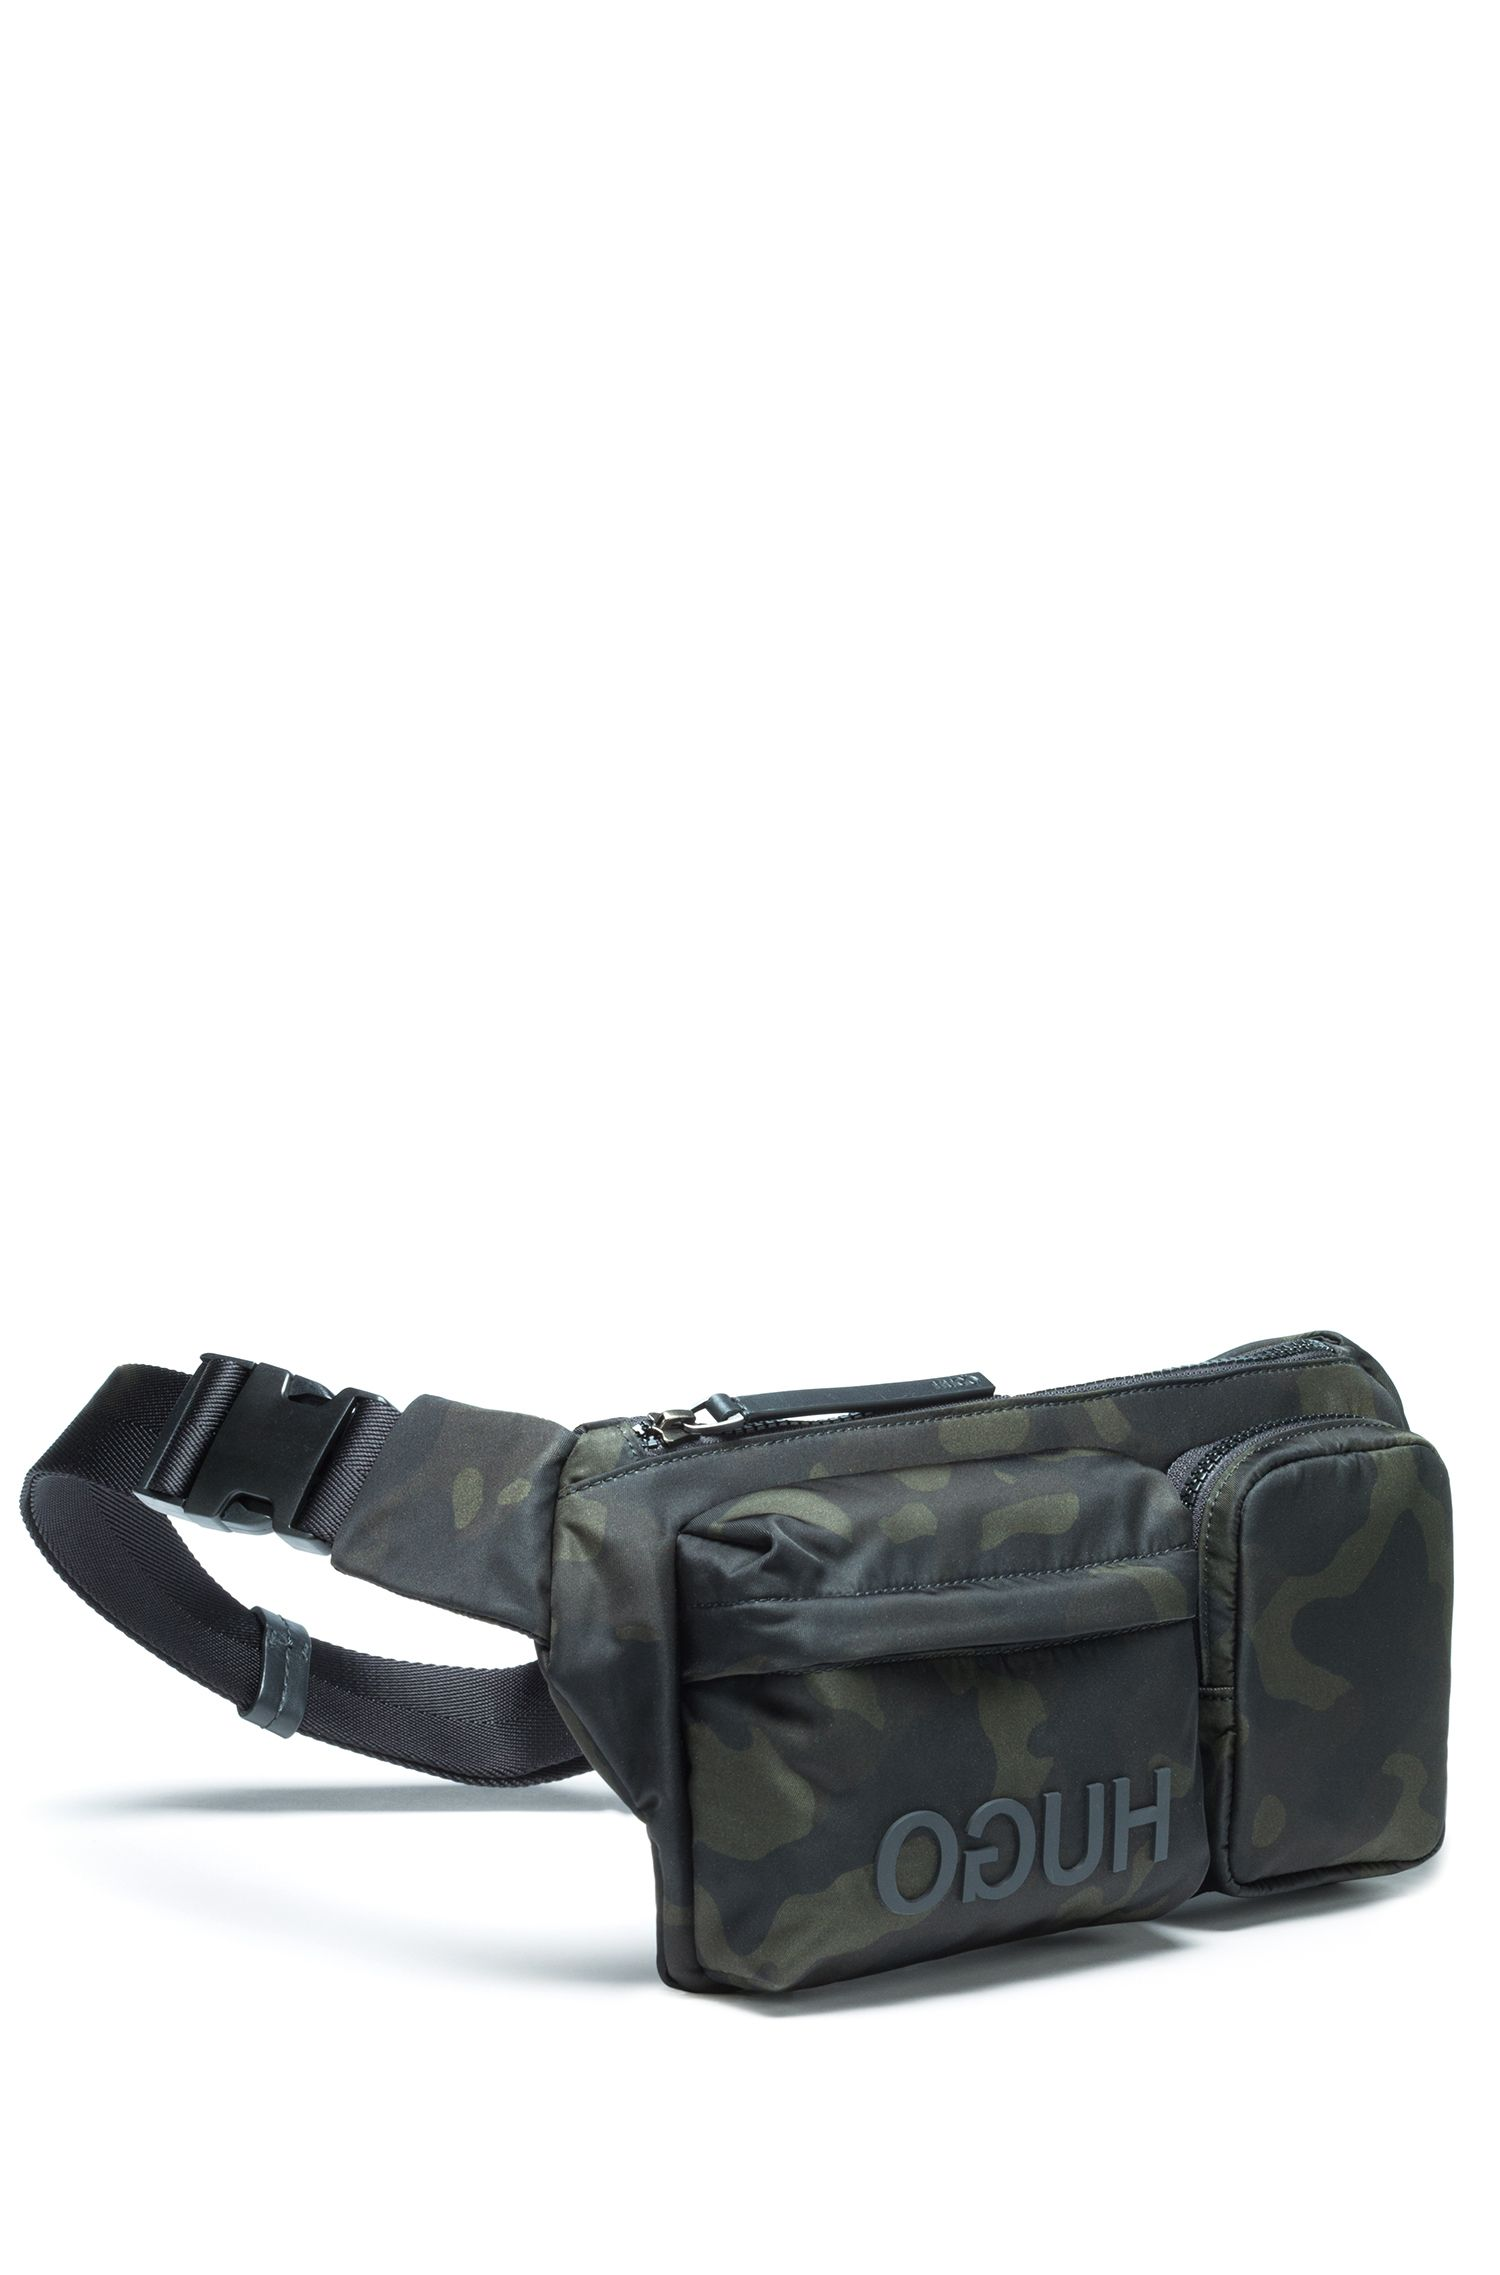 Camouflage-print belt bag in nylon gabardine, Patterned